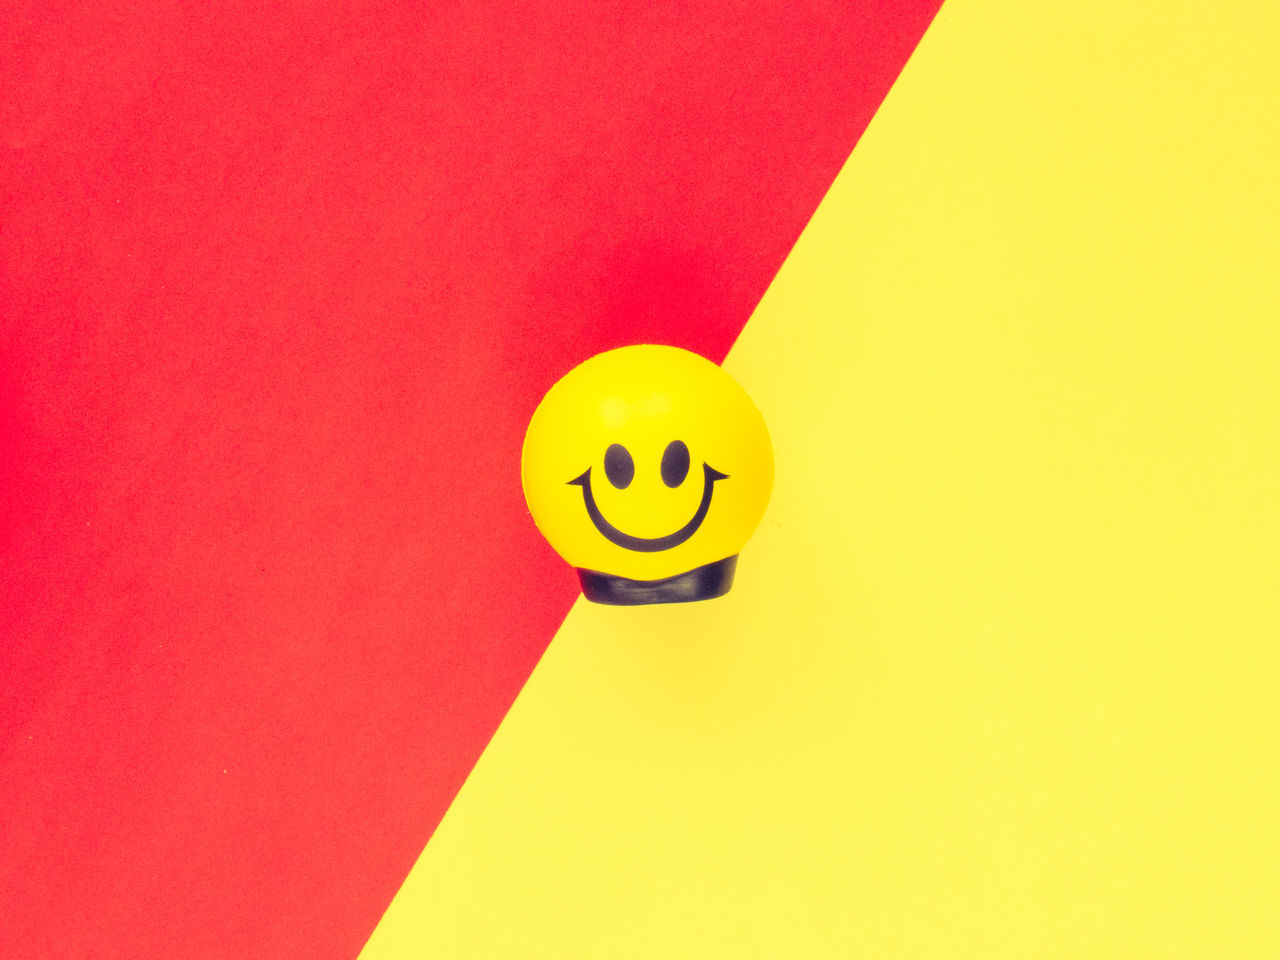 Smiling stress ball on a colorful pastel background. Anthropomorphic Smiley Face Ball Calm Circle Color Contrast Emoji Emotions Happiness Indoors  Minimalism No People Object Ofice Pattern Red Still Life Stress Stress Ball Yellow